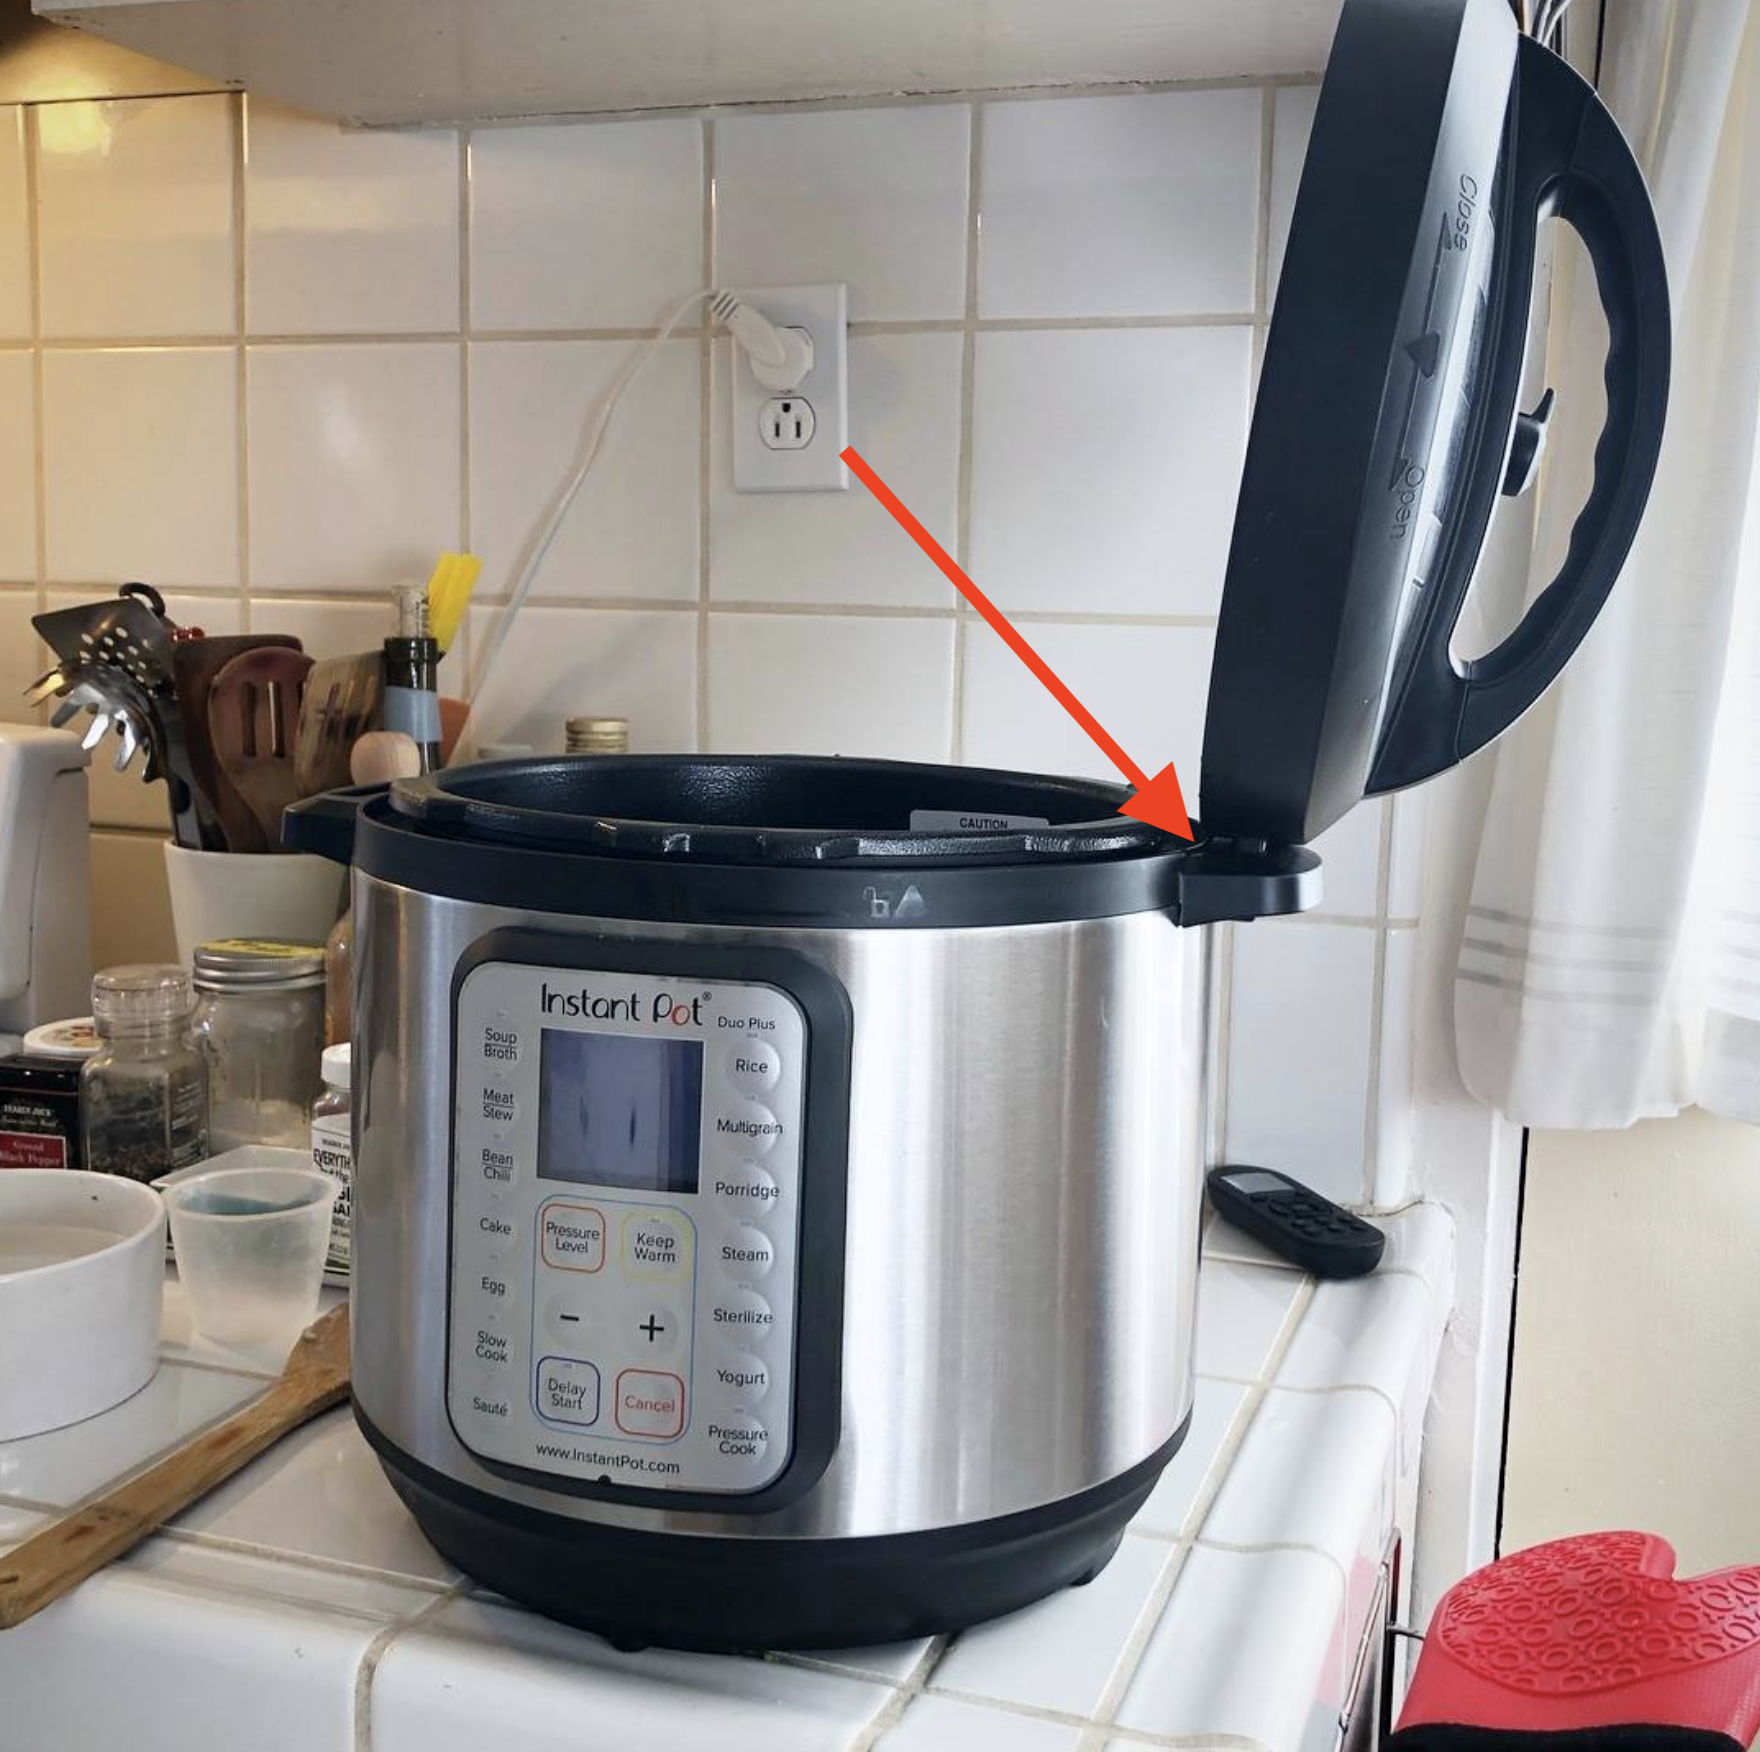 The lid of an Instant Pot balancing on the Instant Pot's side handle